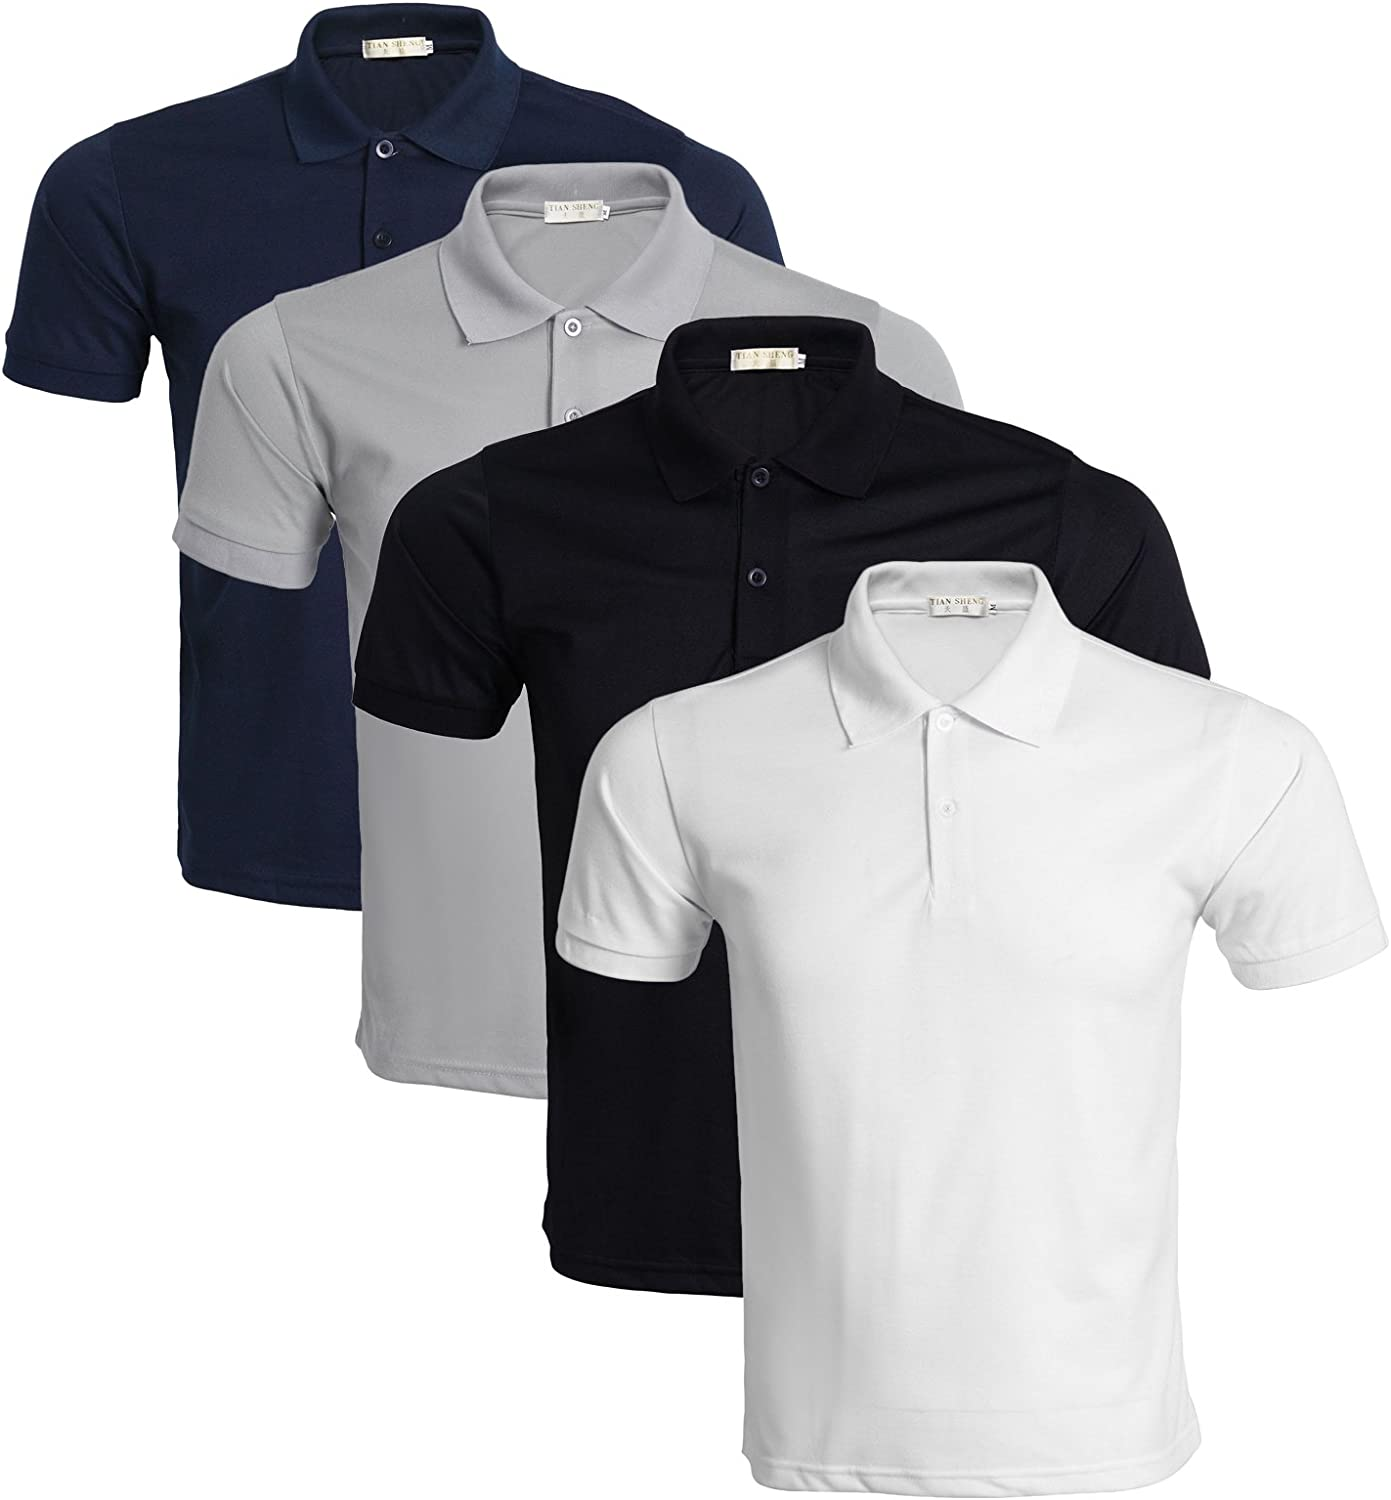 Pack of 3//4//5 LEOCLOTHO Mens Polo T-shirt Cotton Short Sleeve Casual Pure Color Tee Tops